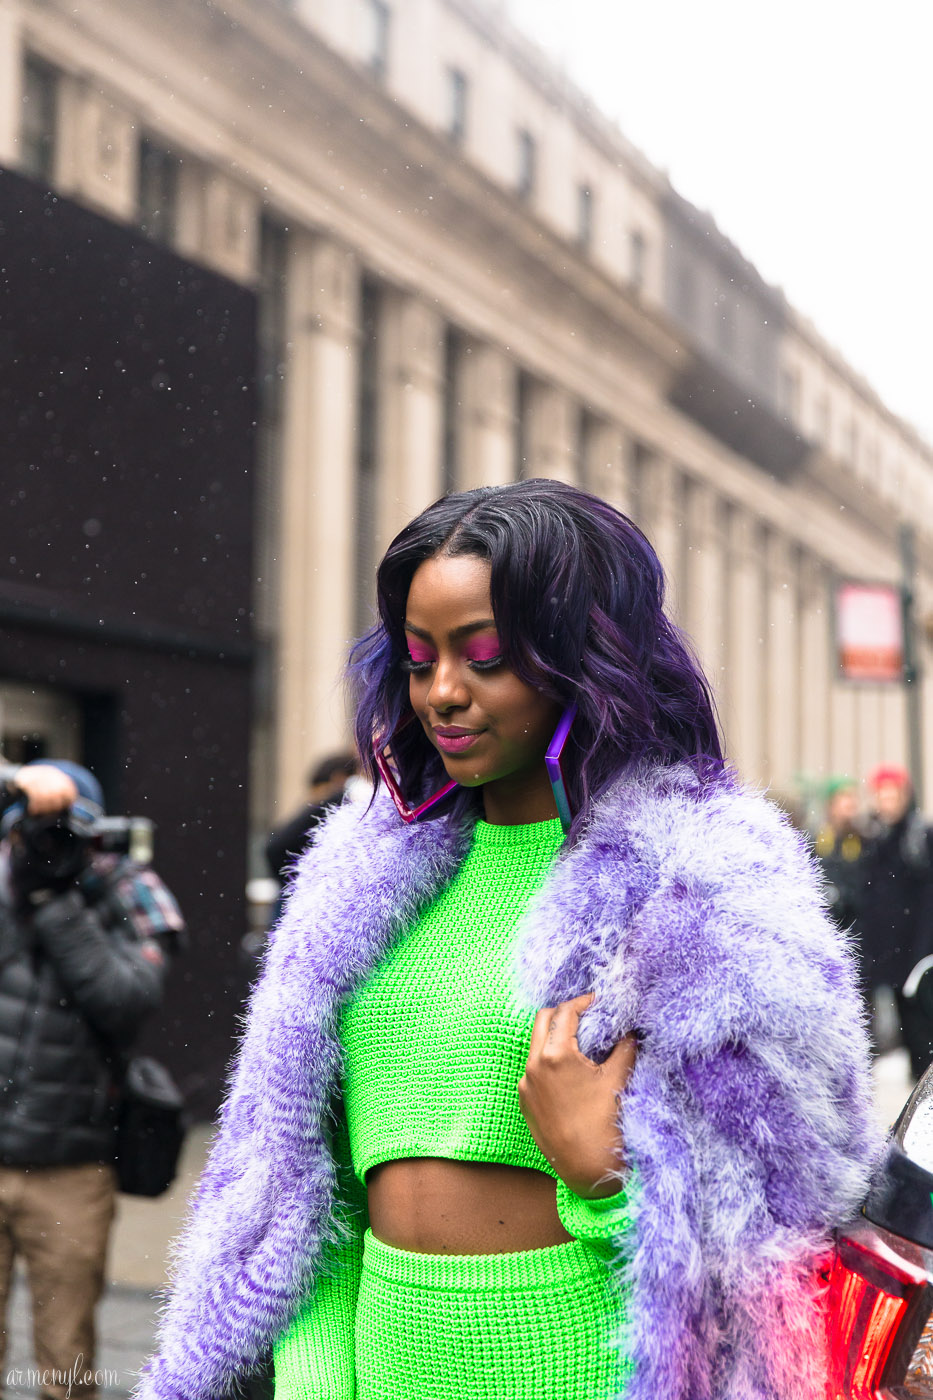 Justine Skye Make up and purple hair photographed in New York City by Armenyl.com